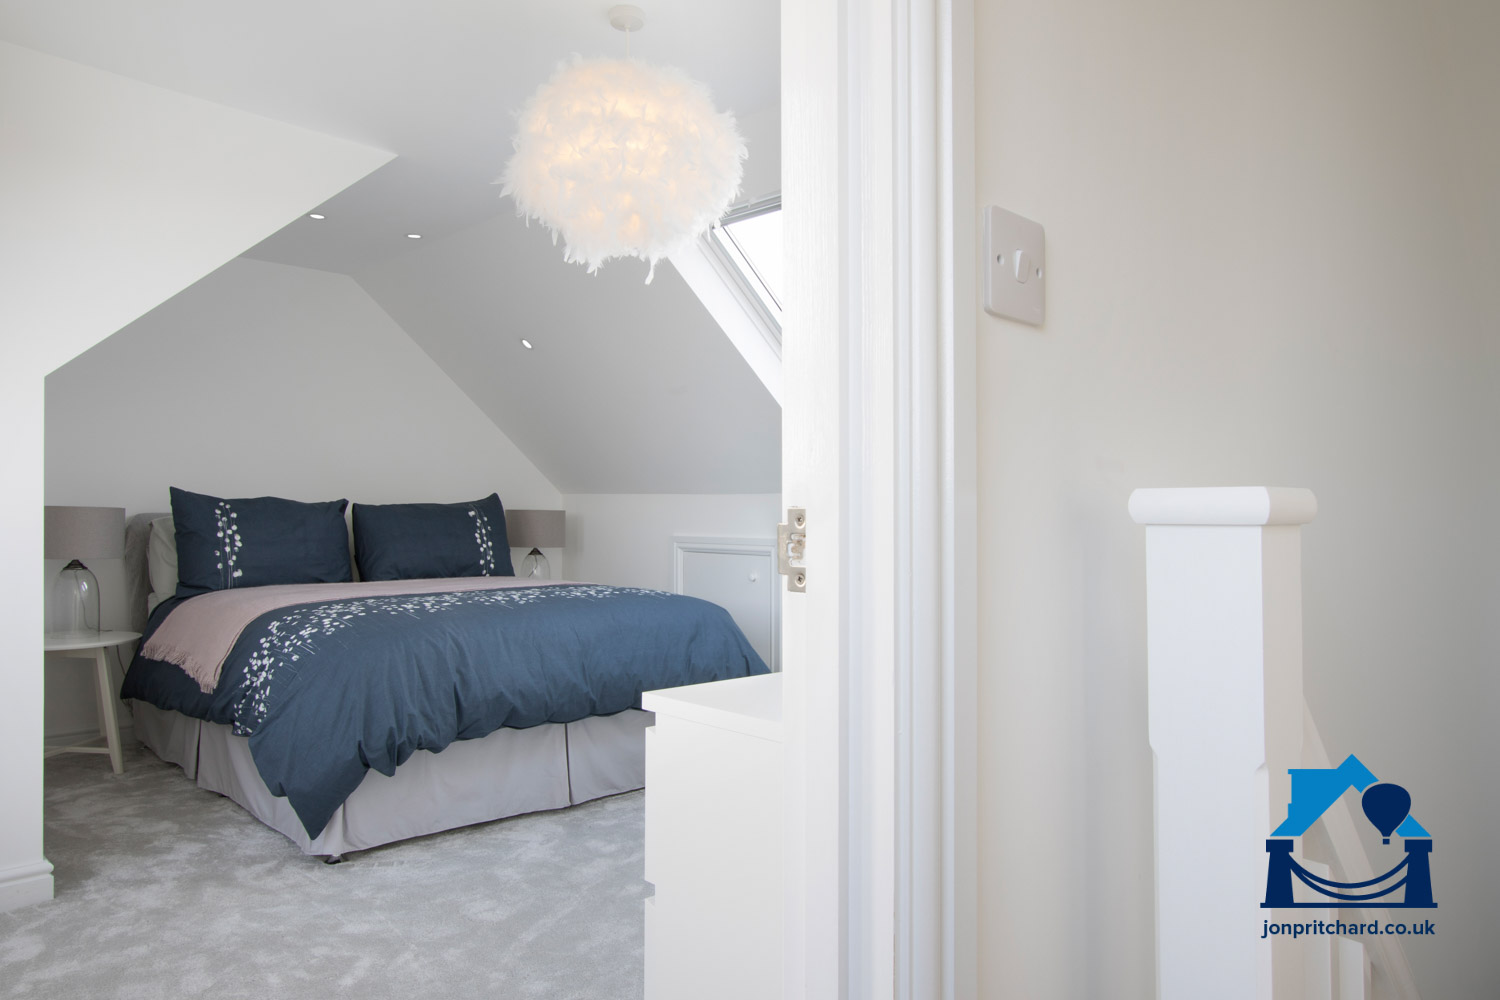 Image showing a loft conversion master bedroom, taken through the door from the landing. A bright room carpeted in light grey, with navy bedding and VELUX windows visible